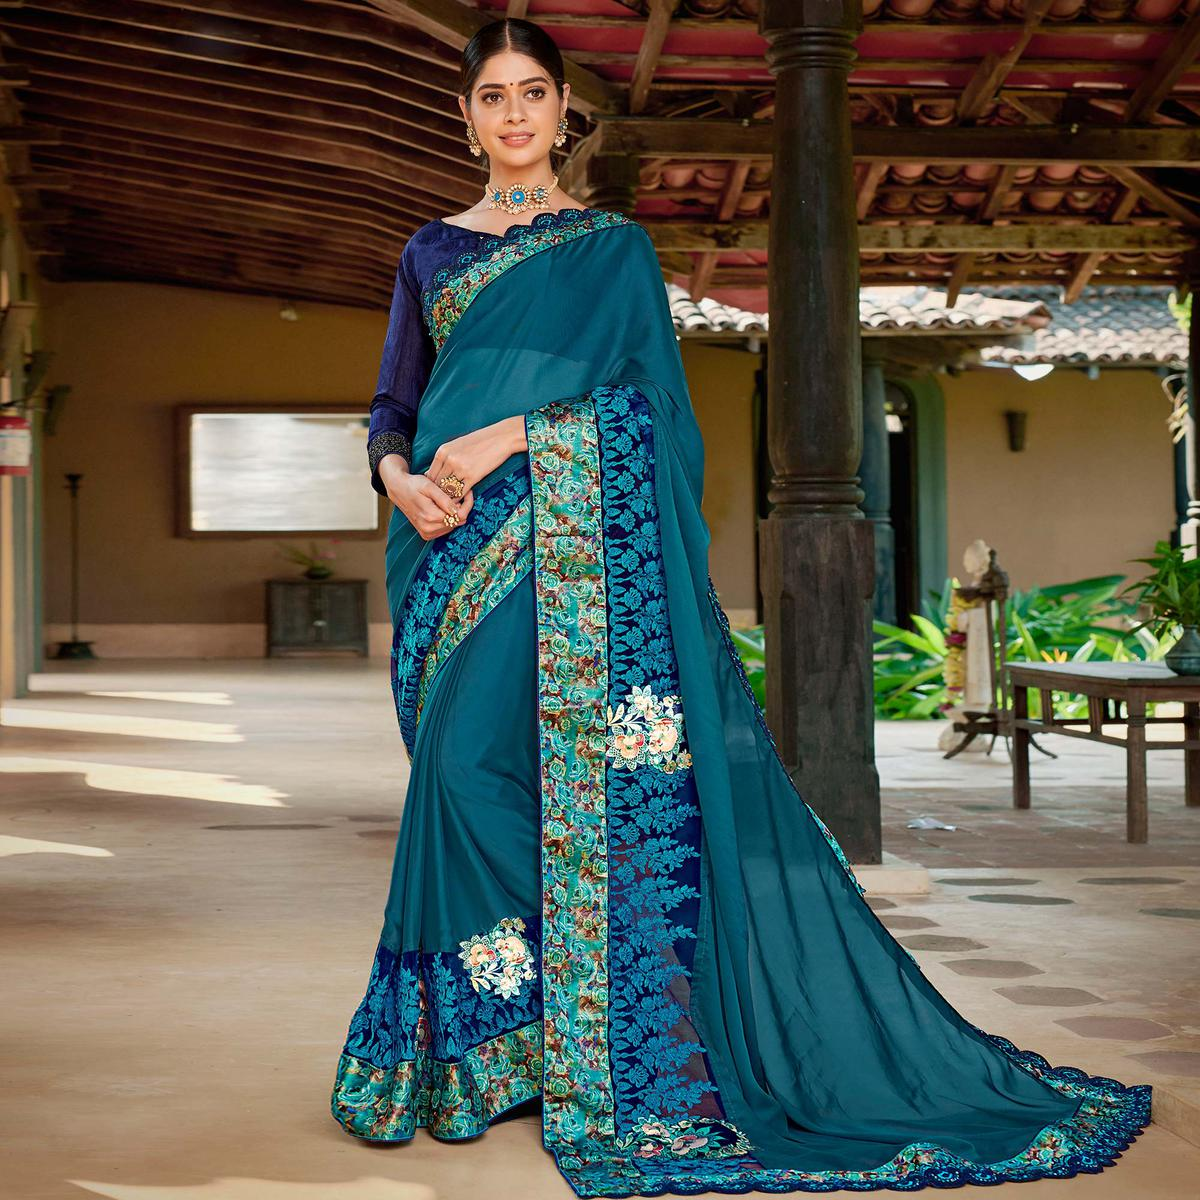 Preferable Teal Blue Colored Partywear Embroidered Art Silk Saree